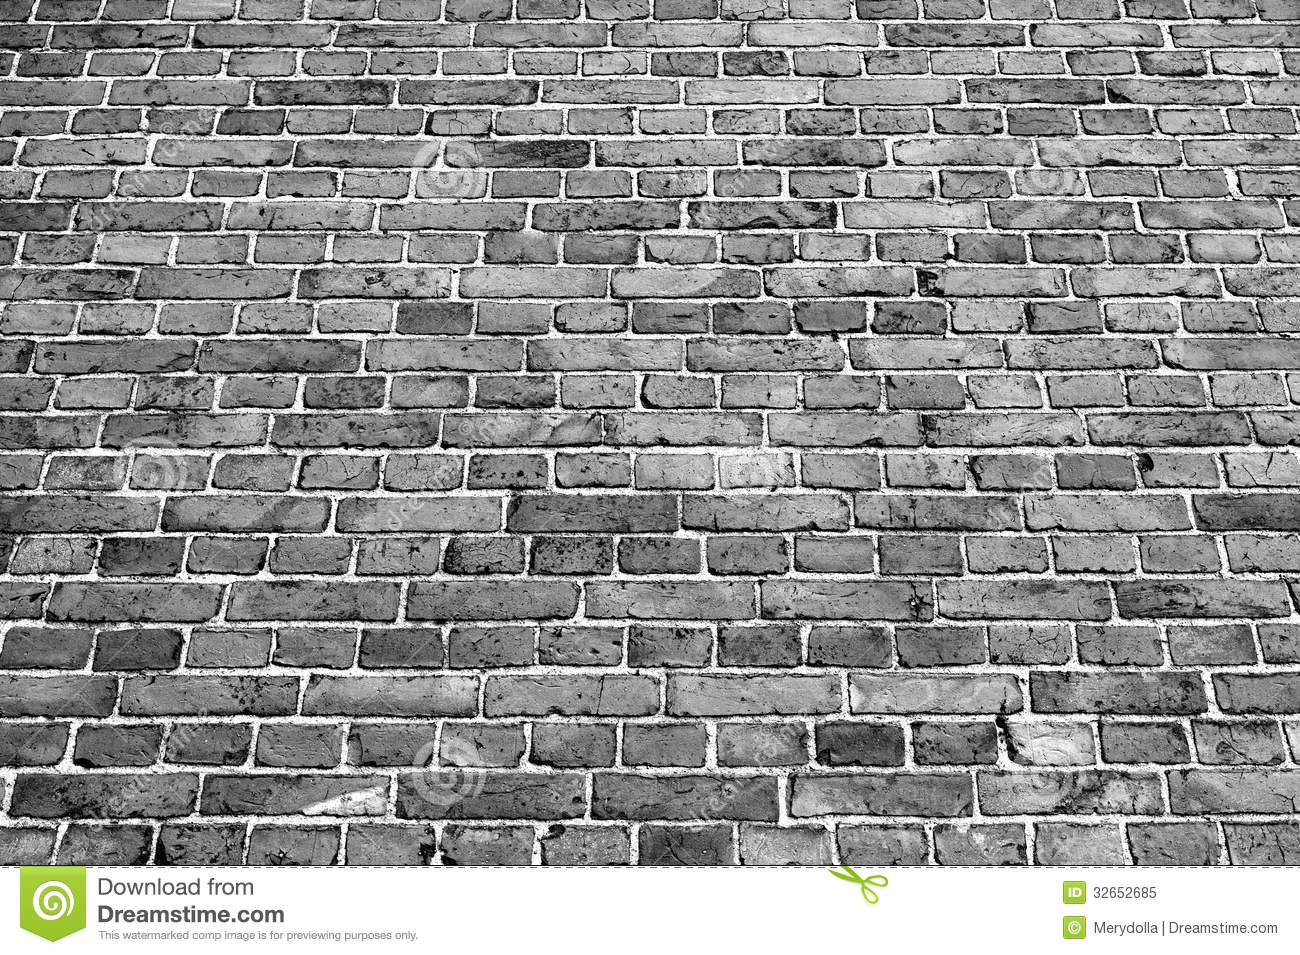 Black Brick Wall Black And White Brick Background Pictures To Pin On